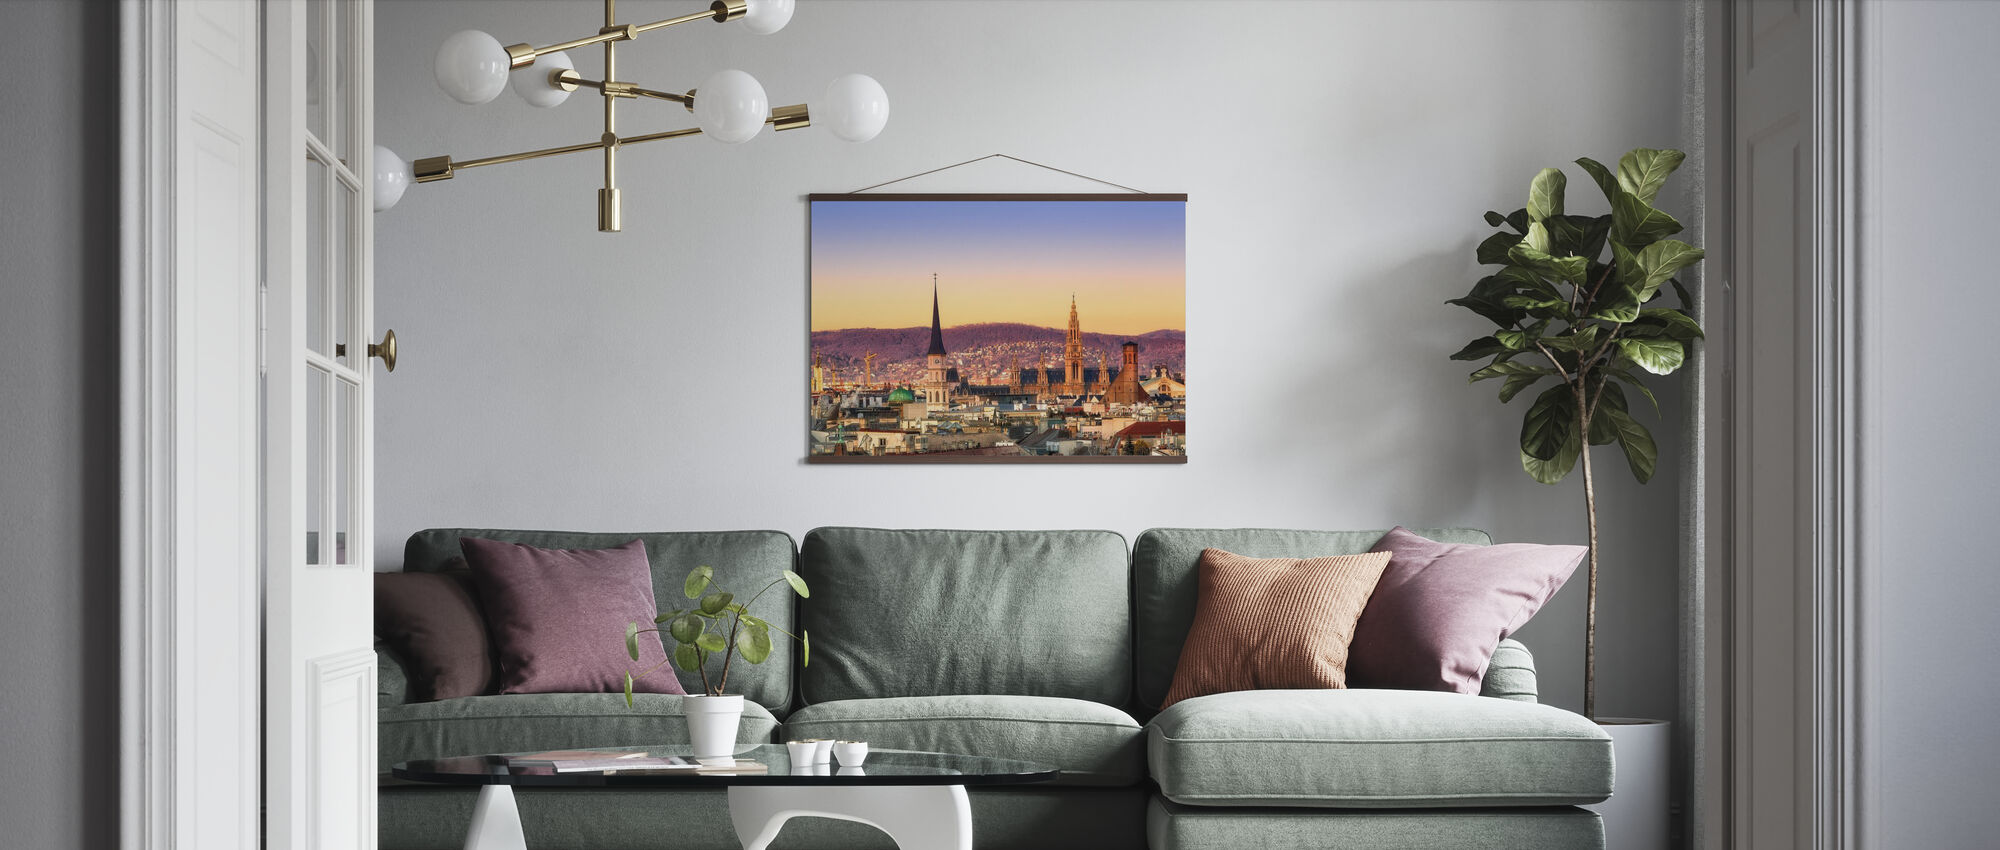 Vienna Sunrise - Poster - Living Room